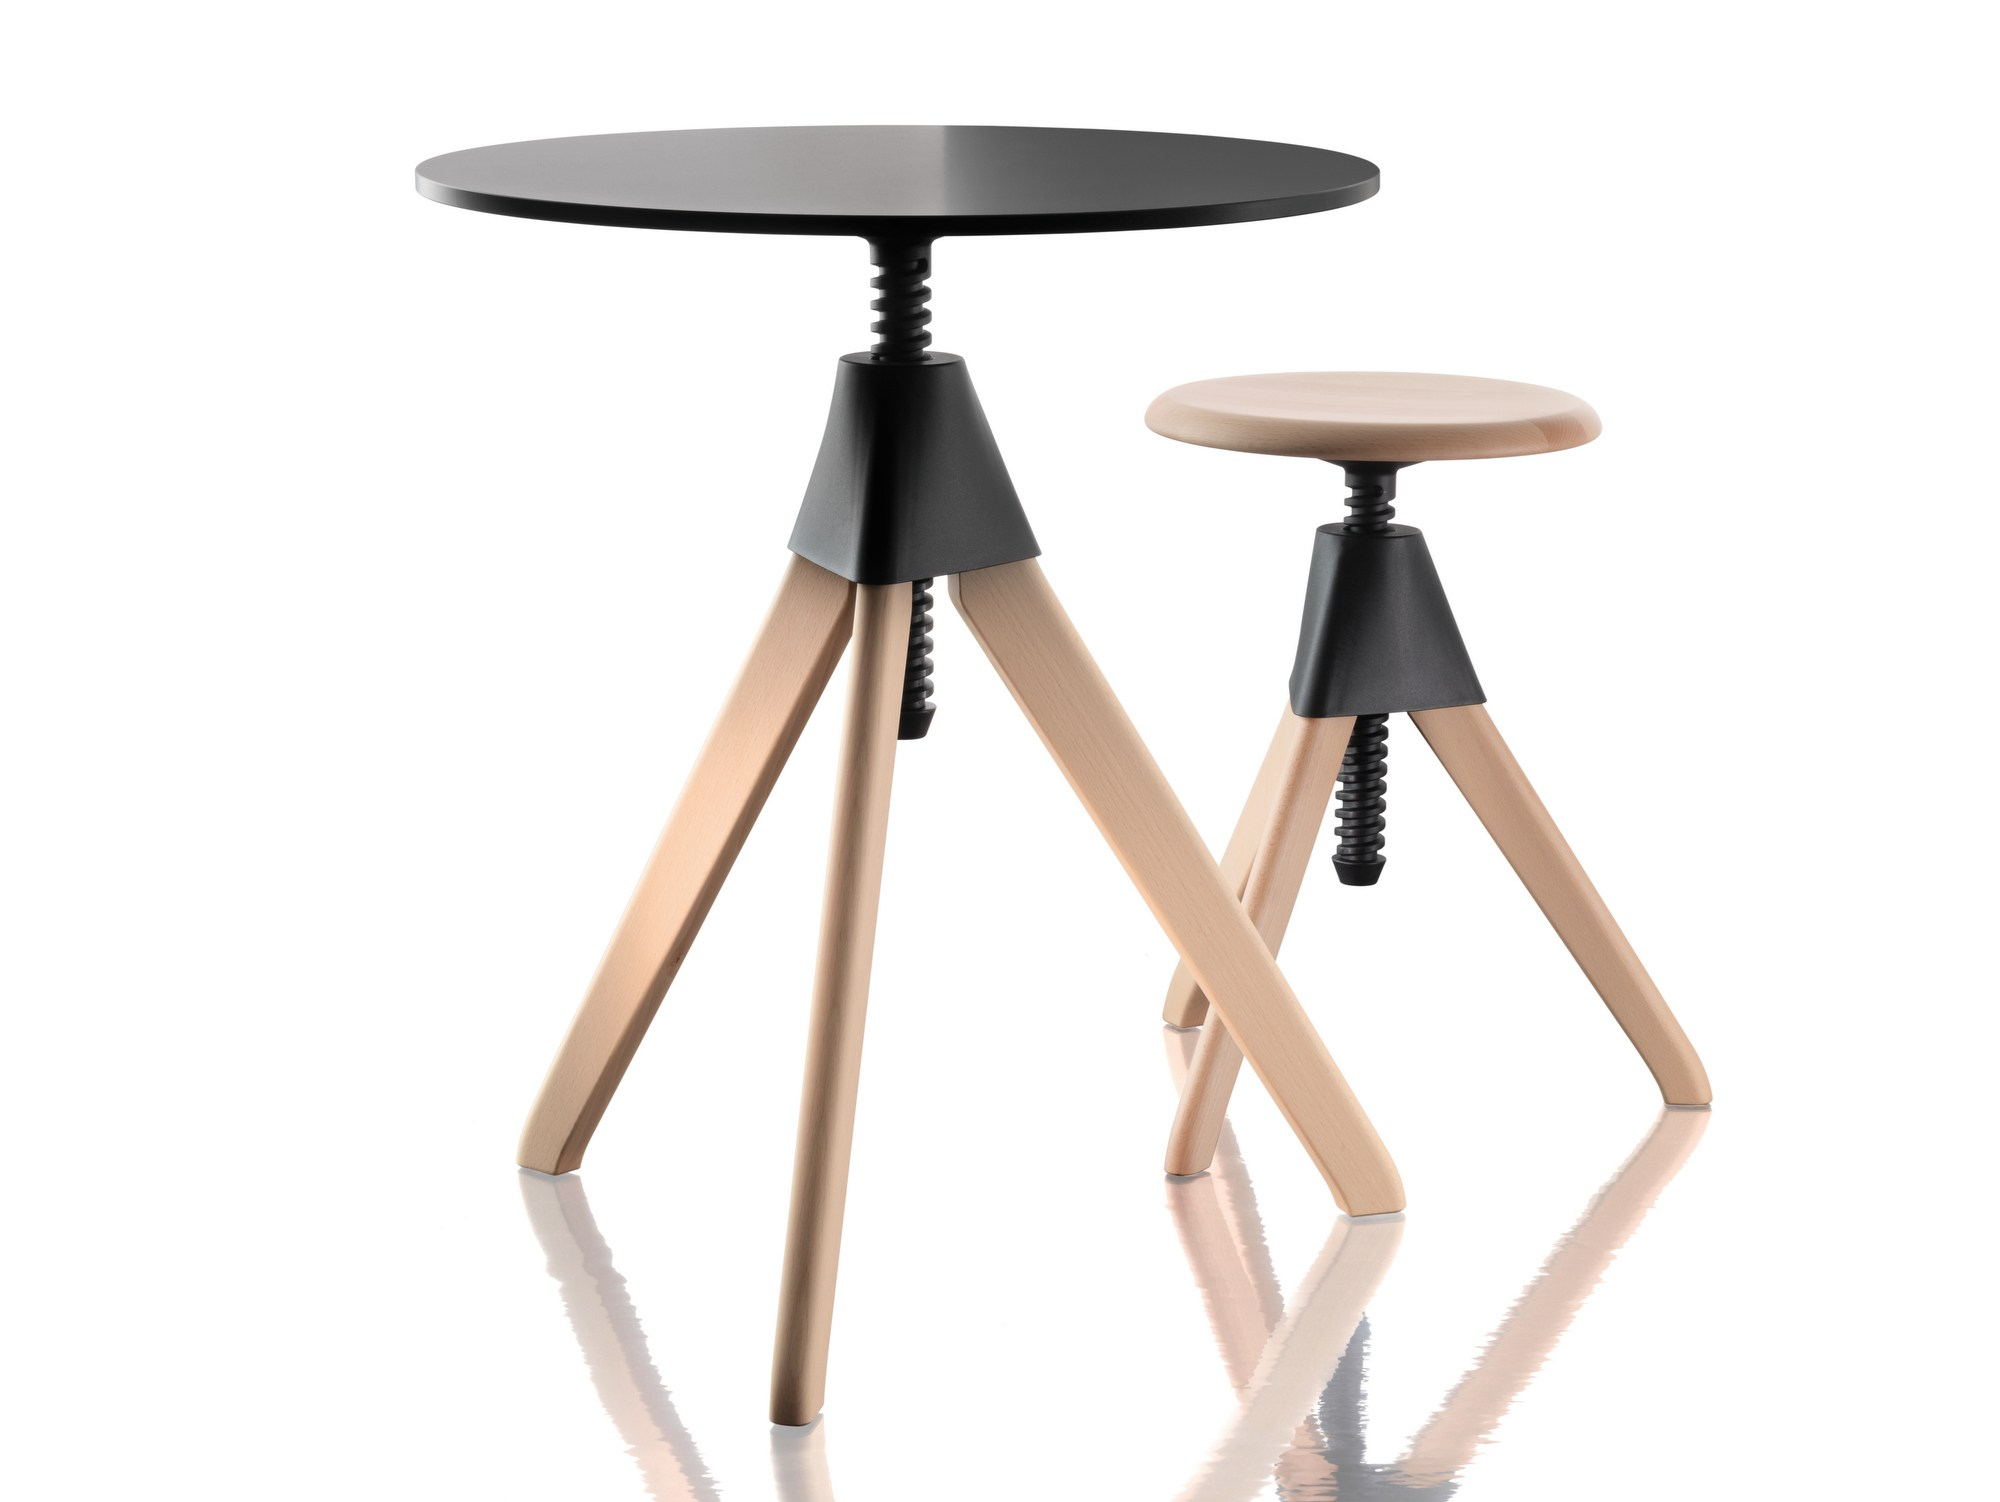 Height Adjustable Round Coffee Table Topsy The Wild Bunch By Magis Design Konstantin Grcic